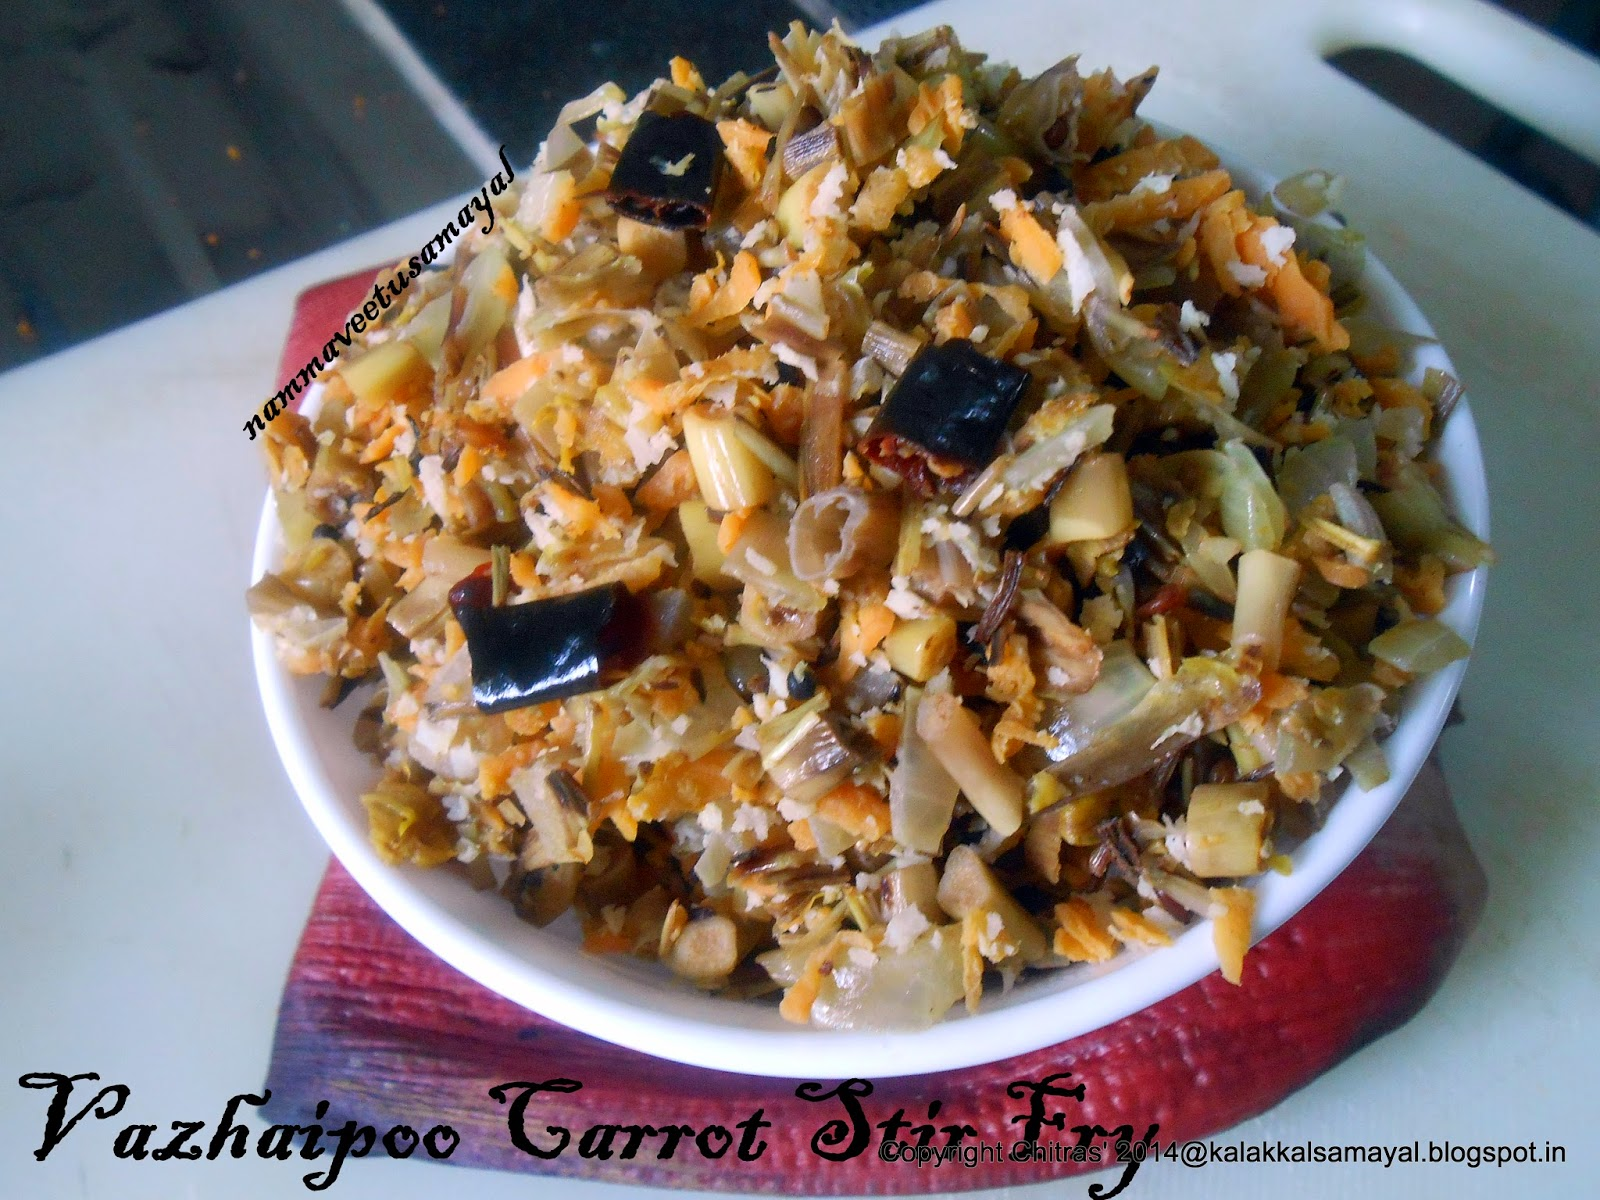 Vazhaipoo Carrot Poriyal [ Banana flower carrot stir fry ]